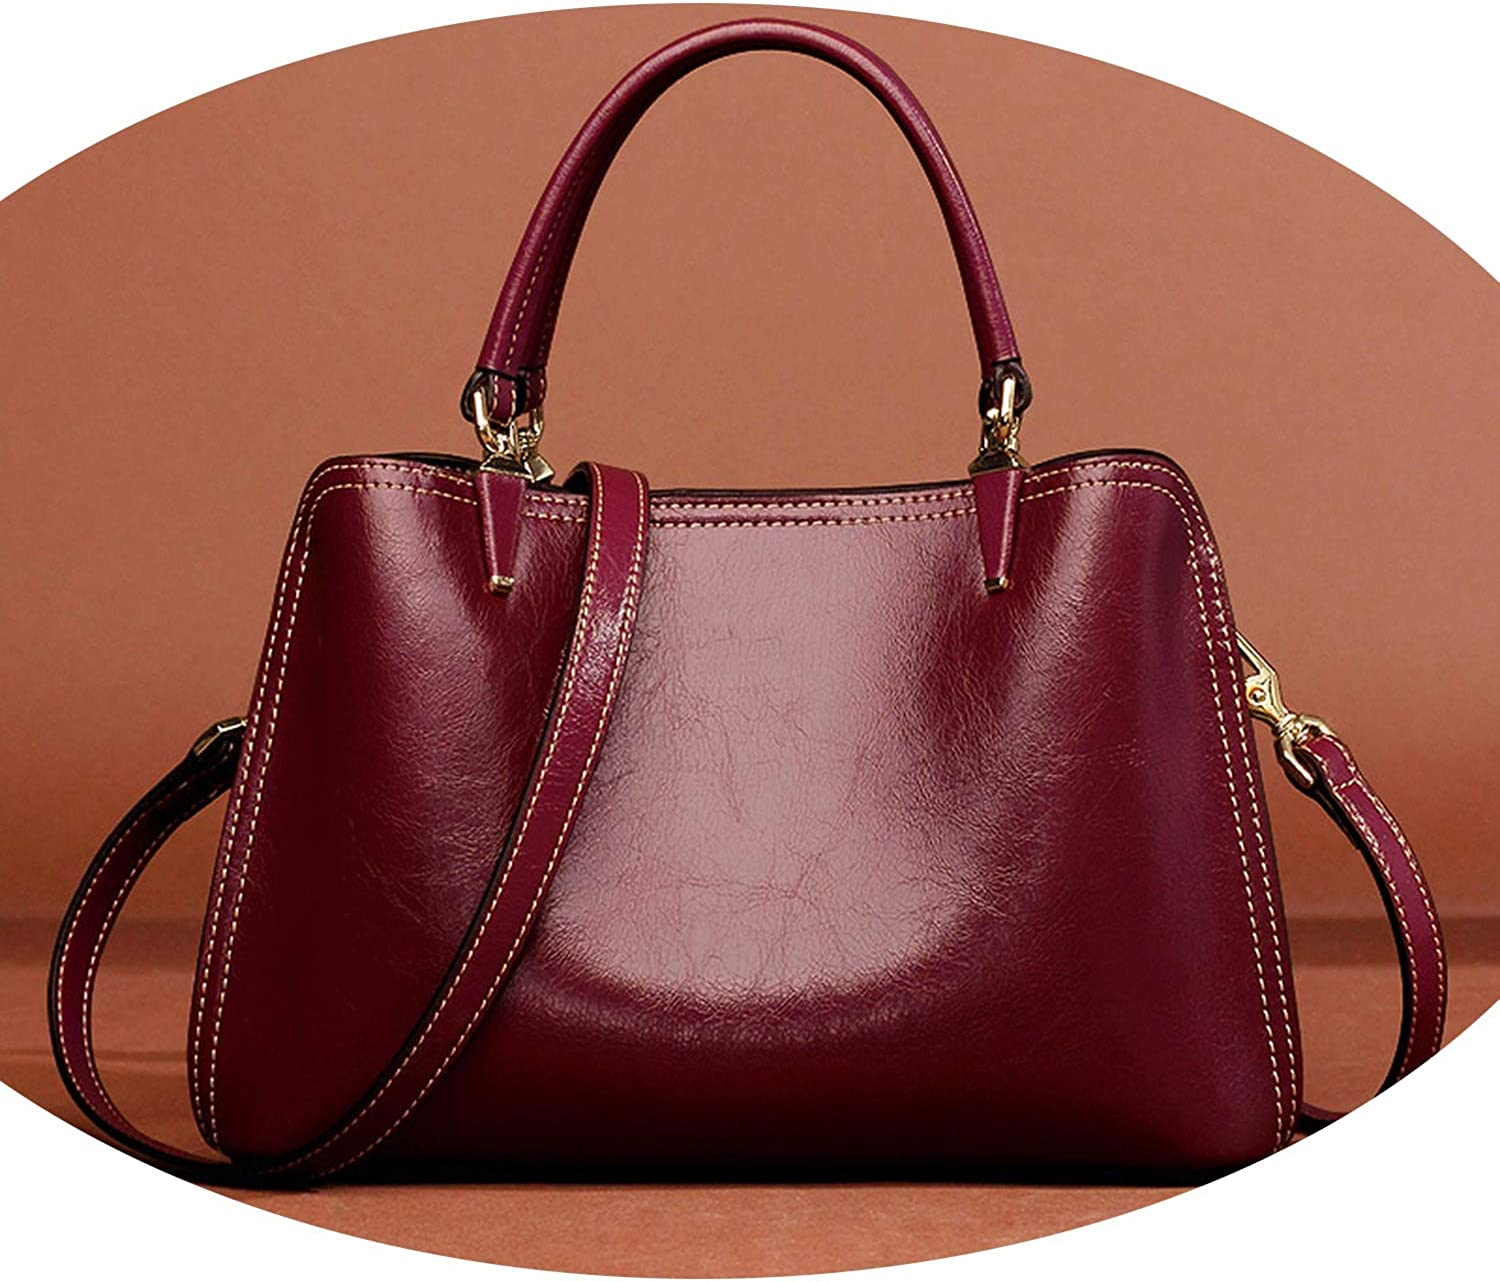 Casual Tote and Handbag Women Split Leather Classy Shoulder Bags Crossbody Bag for Lady,904J006L1R